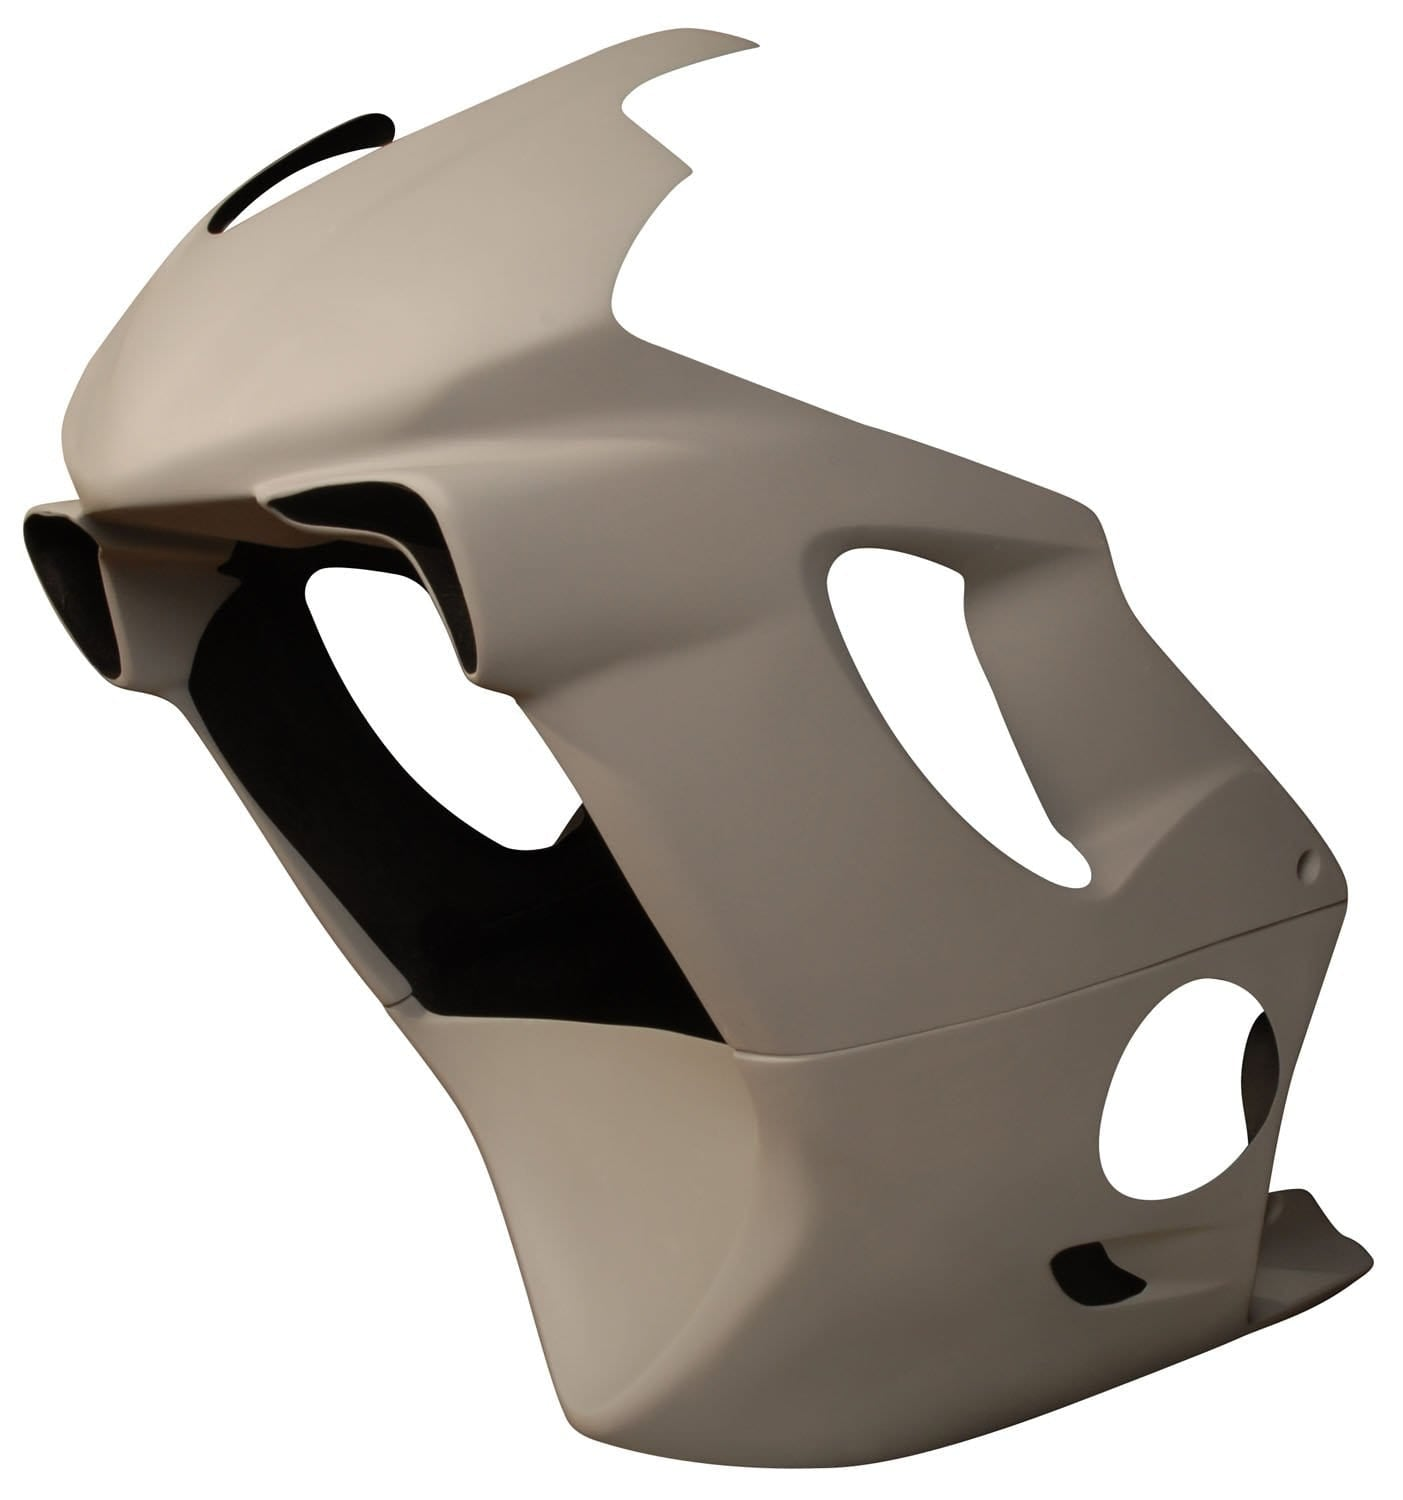 Honda F4i 2001-2006 Upper fairing - Pro Series - Woodcraft Technologies - Motorcycle Parts